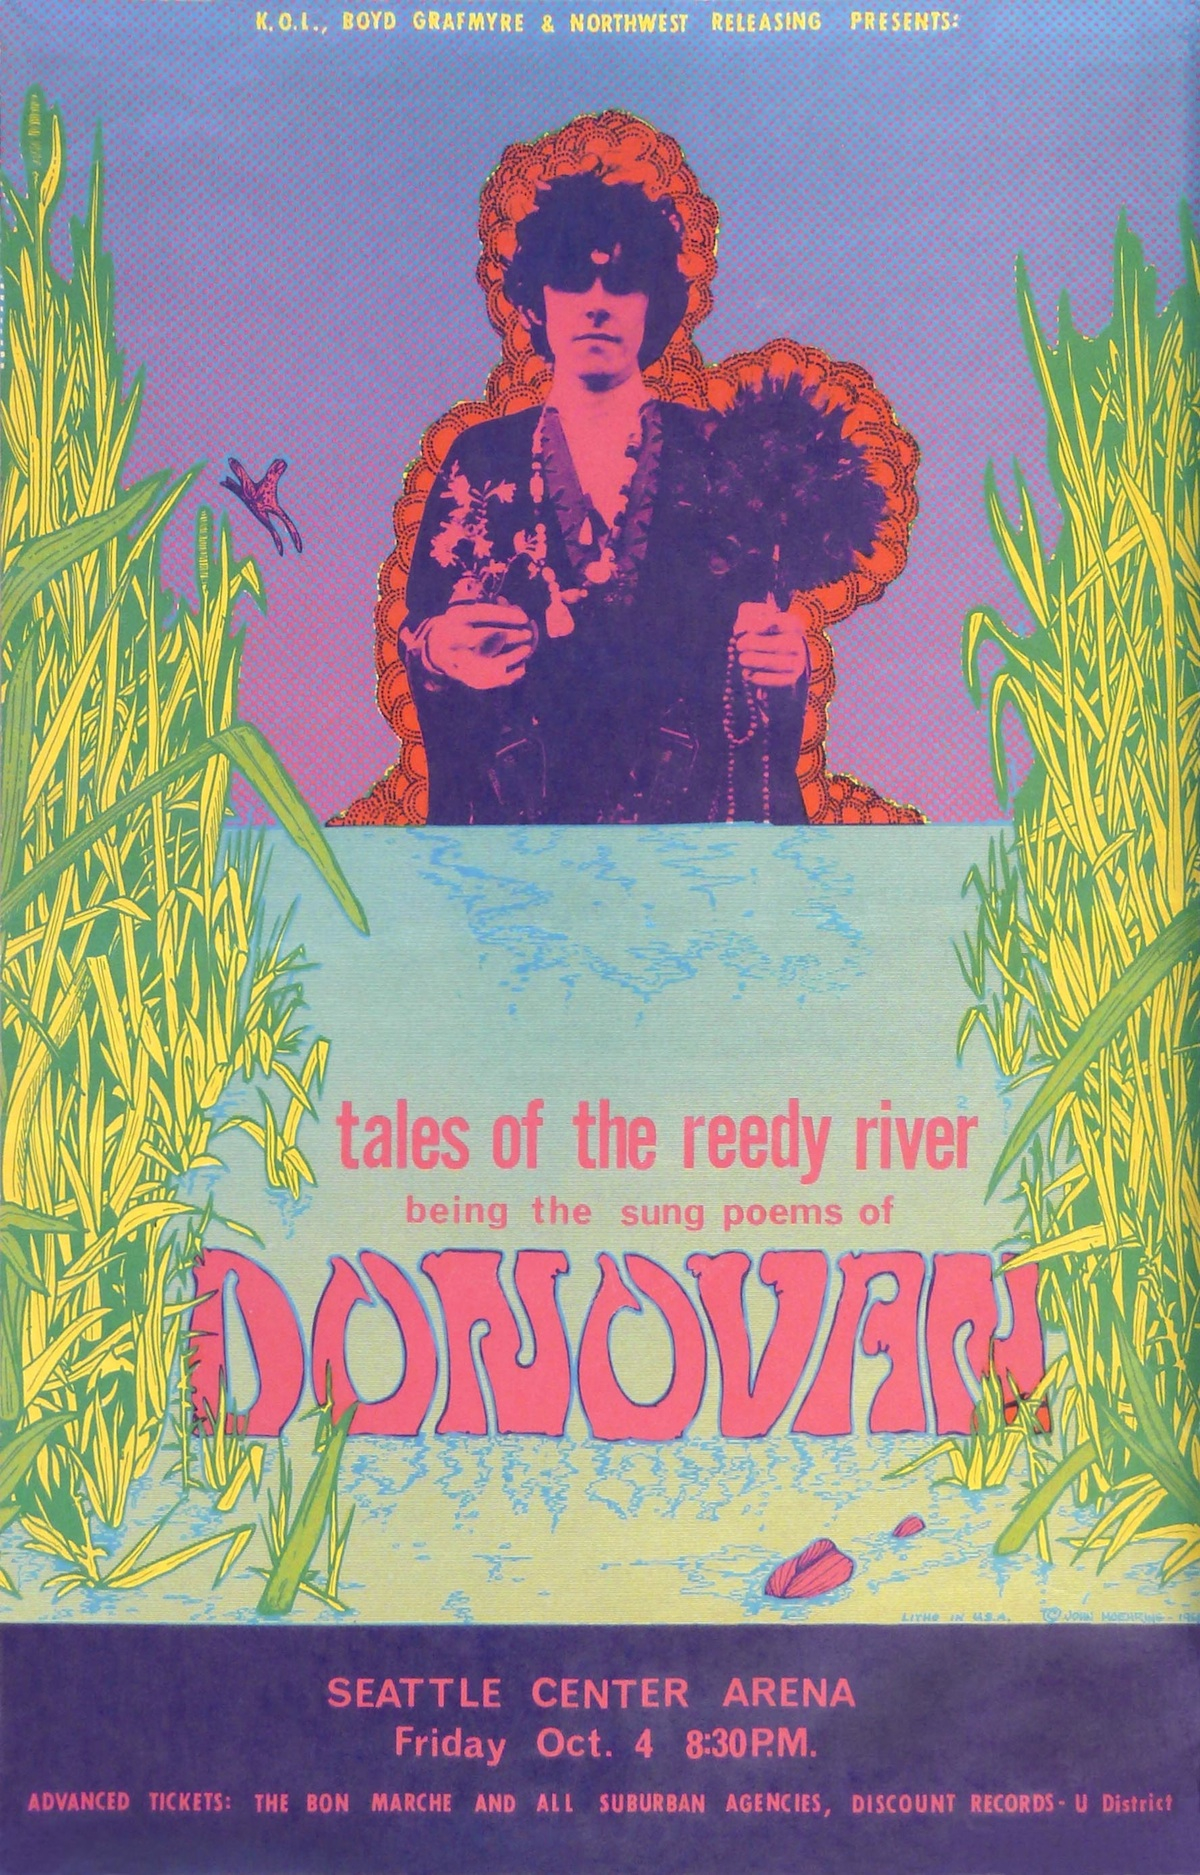 According to author and artist Scott McDougall, John Moehring, who designed this poster for a 1968 Donovan concert, was one of the best Seattle poster artists of the late 1960s.